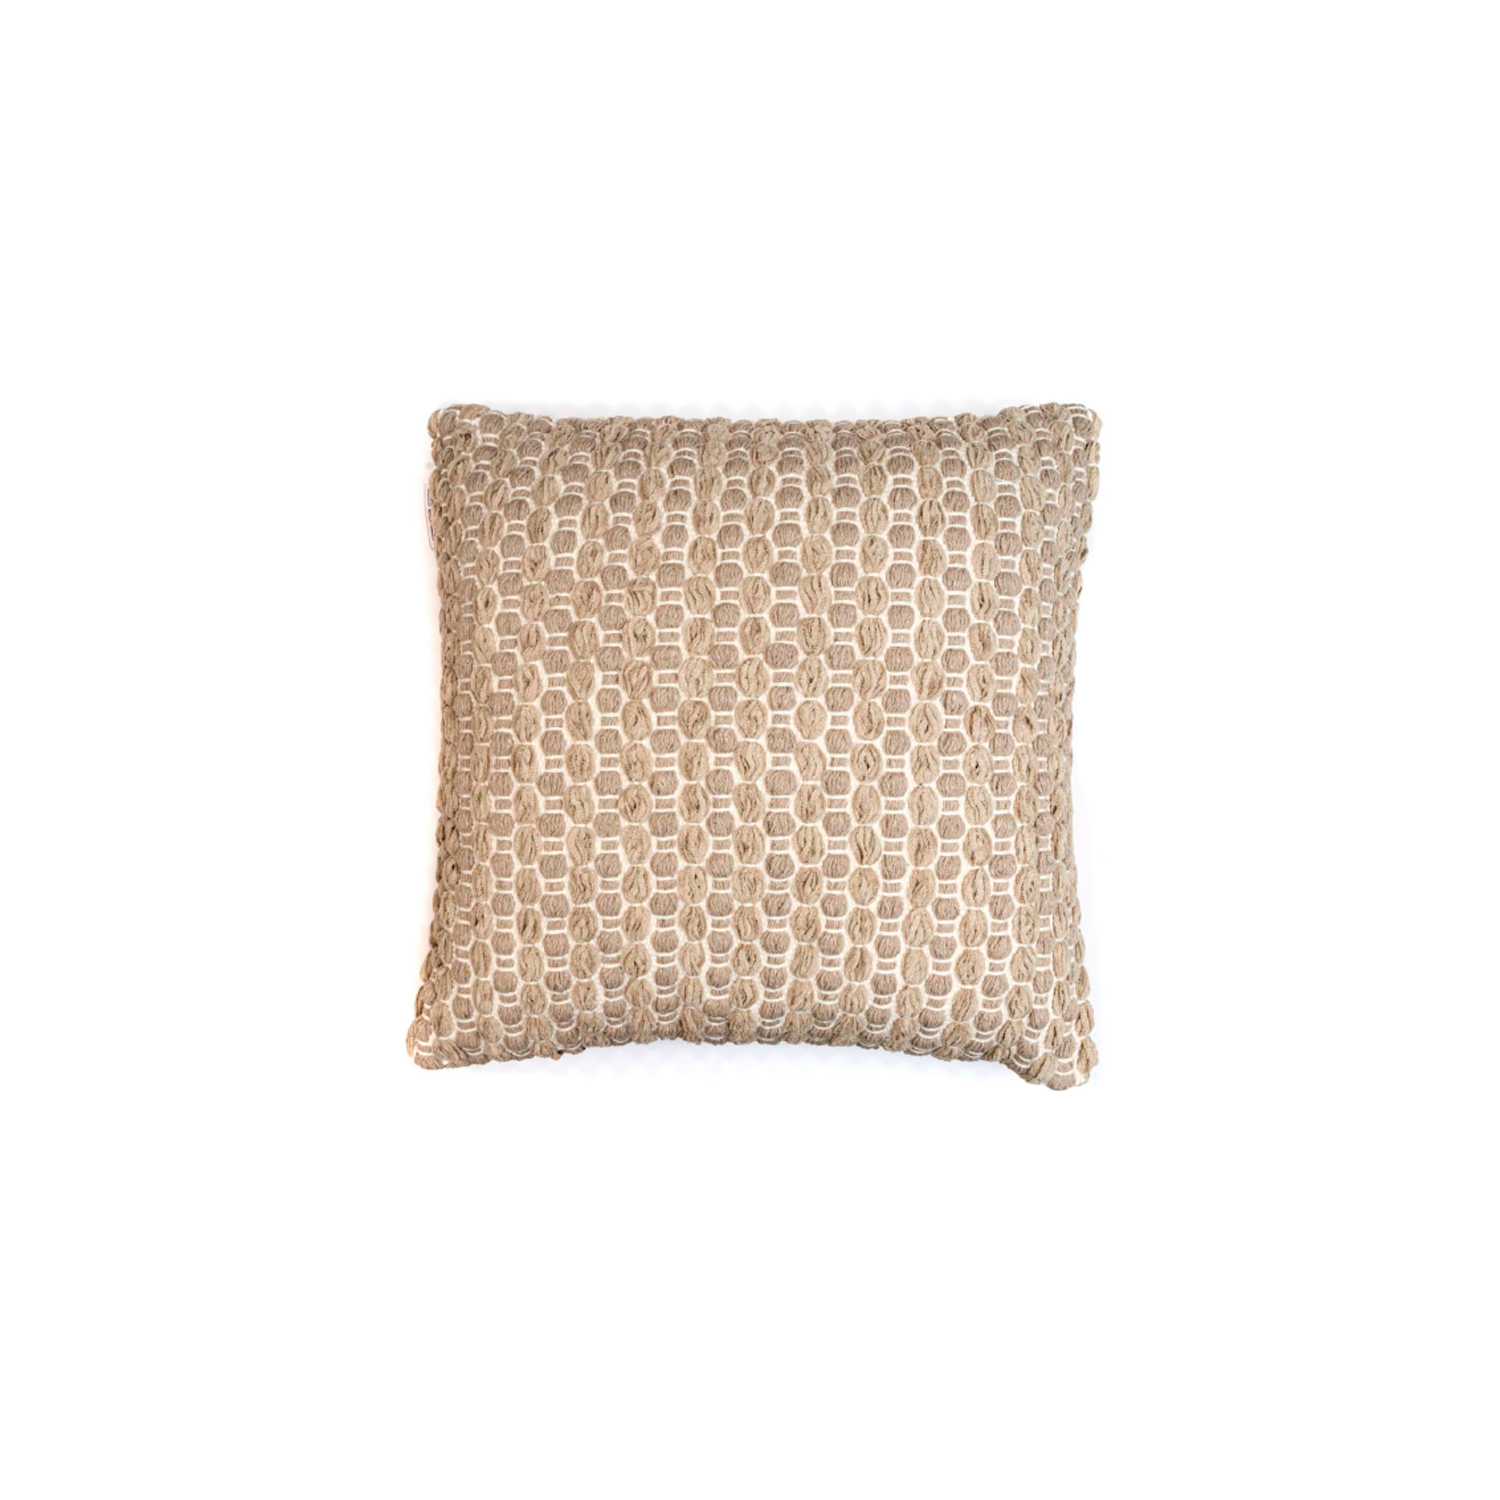 Estrela Terra Cotton Cushion Square - The Flame Sustainable Collection is made from a selection of organic cotton fibres, eco-friendly, hand-woven or elaborated using traditional hand-loom techniques. Carefully knitted within a trained community of women that found in their craft a way to provide their families.  This collection combines Elisa Atheniense mission for responsible sourcing and manufacturing. Each piece is meticulously hand-loom by artisans who practised methods with age-old techniques. With a minimal electricity impact, each item crafted is therefore unique and exclusive. Weavers and artisans are the ultimate lifelines of Elisa Atheniense Home Products.  The hand woven cotton, washable cushion cover is made in Brazil and the inner cushion is made in the UK.   | Matter of Stuff